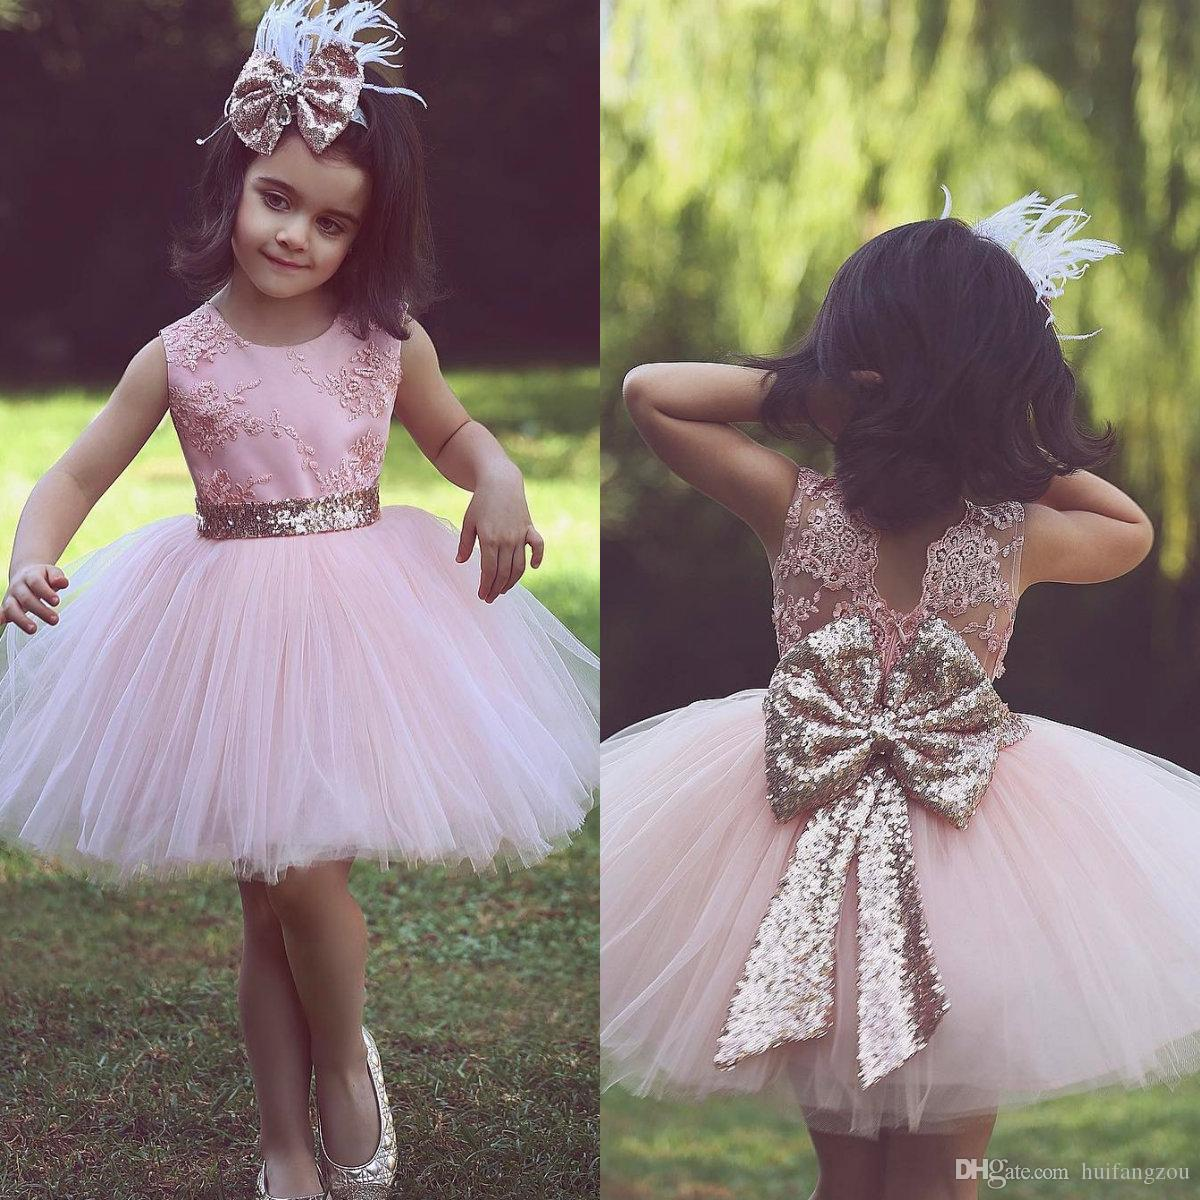 c72fad6d004 New Arrival Light Pink Flower Girl Dresses Jewel Neck Appliques Lace Back  Sequined Bow Design Girls Pageant Dress Ball Gowns Beautiful Little Girl  Dresses ...